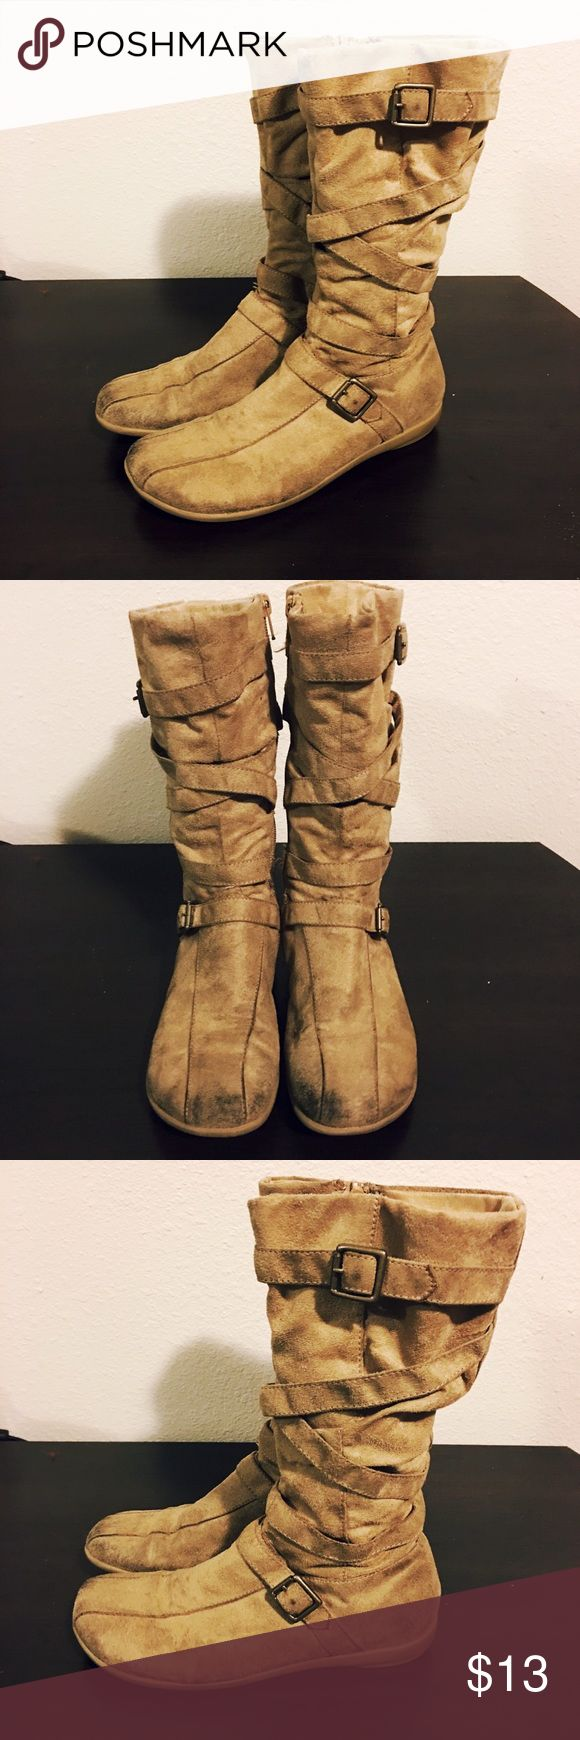 🆕 Beige Zipped Up Boots Has been worn several times. In good condition. Airwalk Shoes Boots